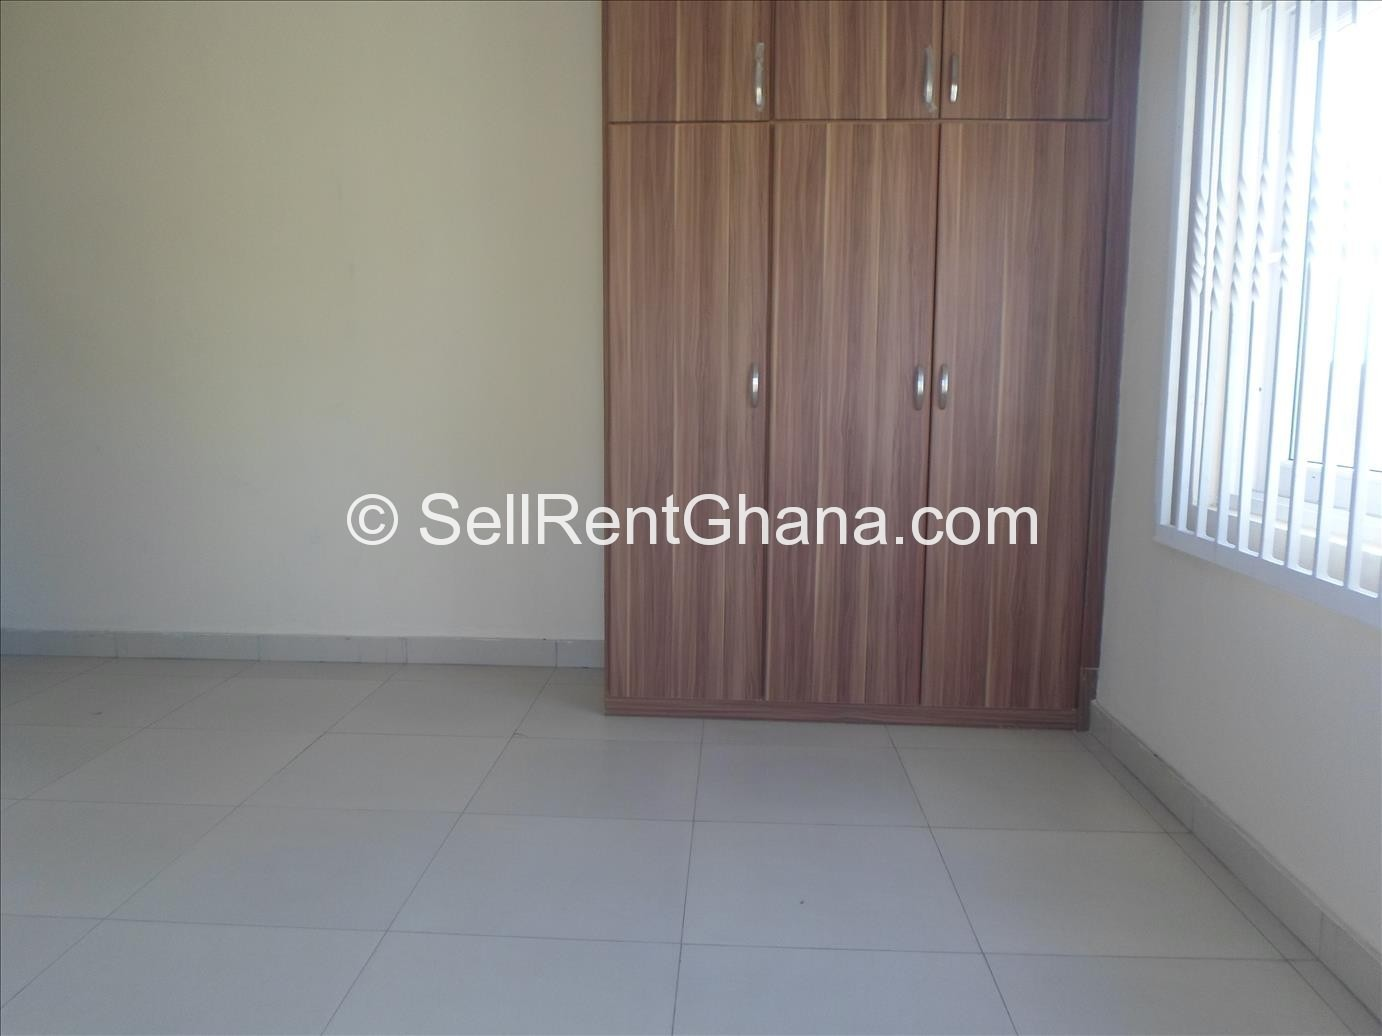 3 Bedroom House for Rent, East Legon | SellRent Ghana